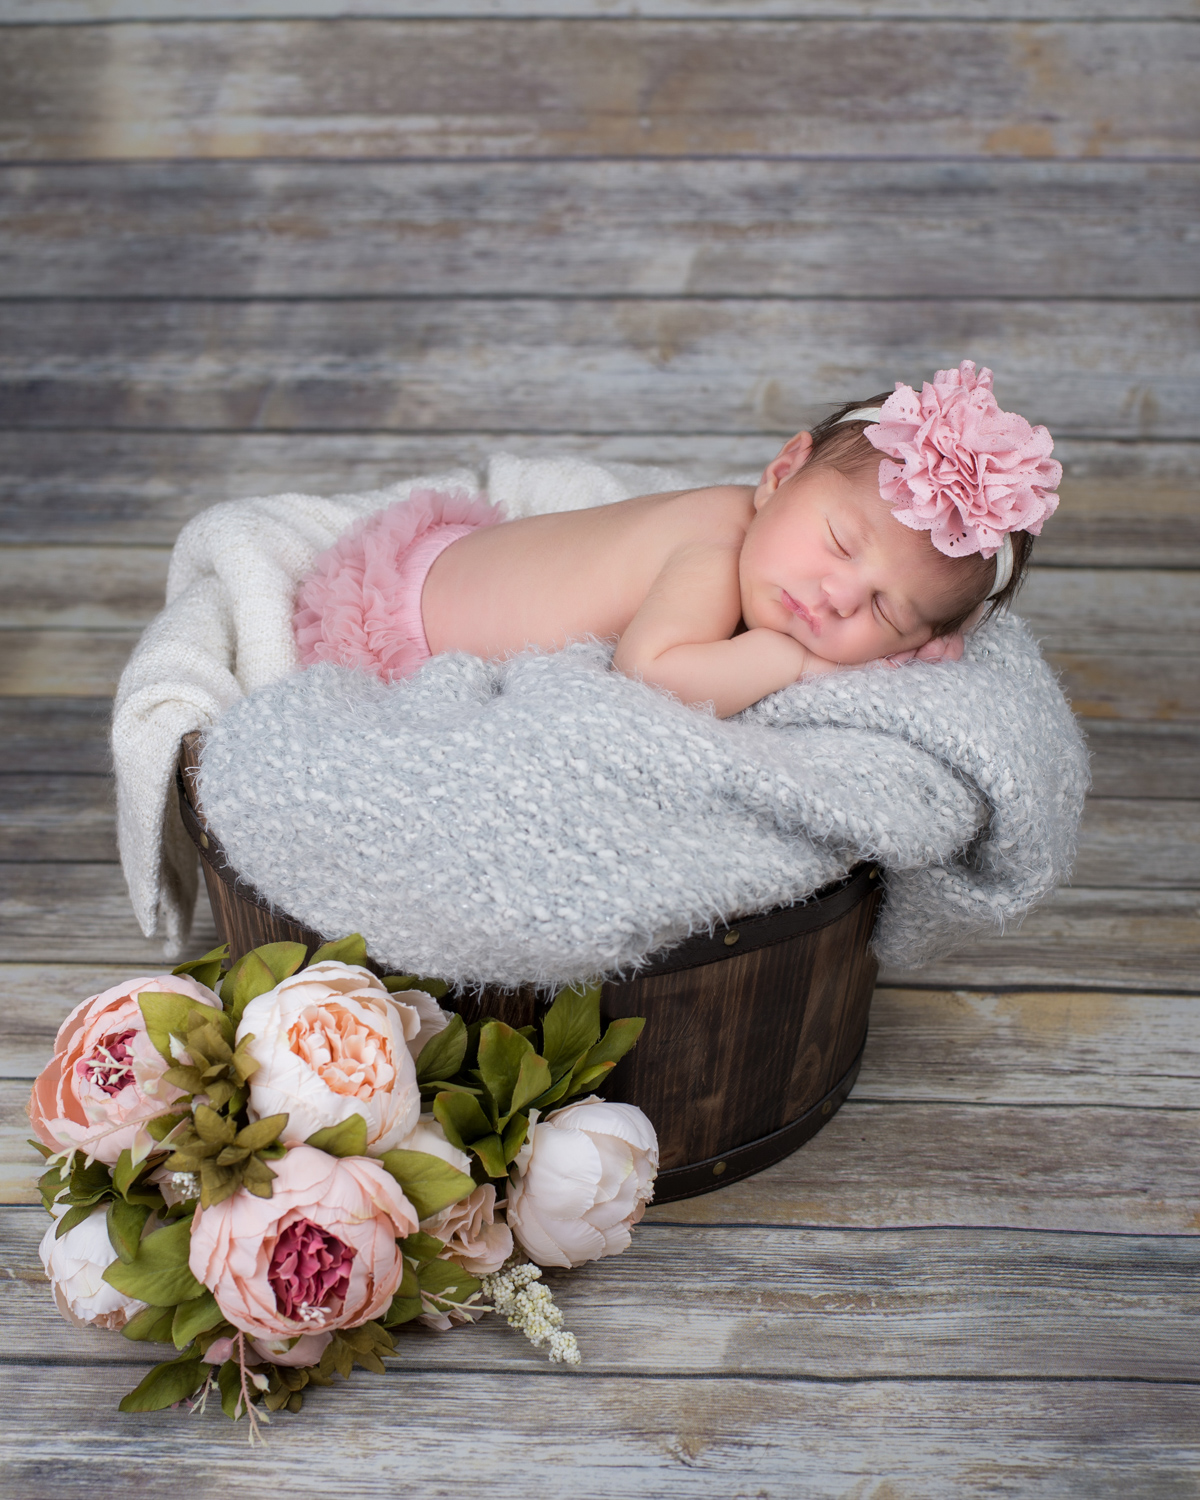 Newborn baby sleeps on a grey blanket in a bucket with pink flowers.